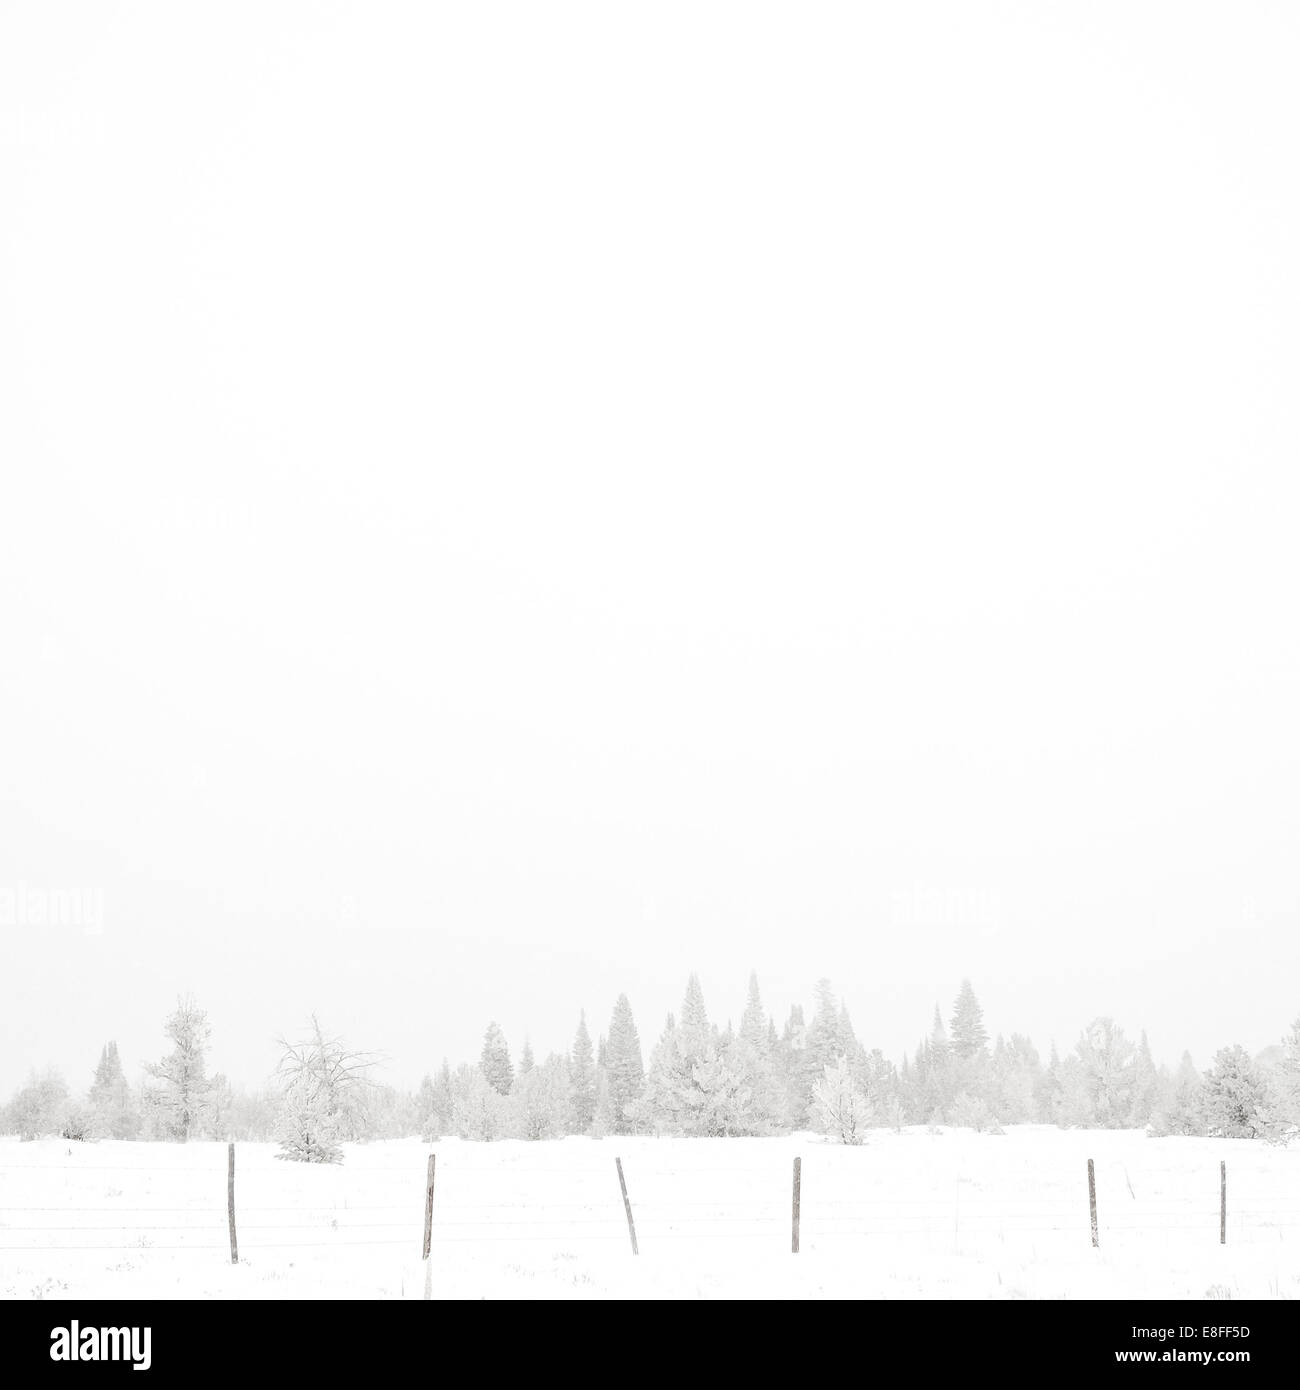 USA, Wyoming, Albany County, Laramie, Snow covered forest Stock Photo